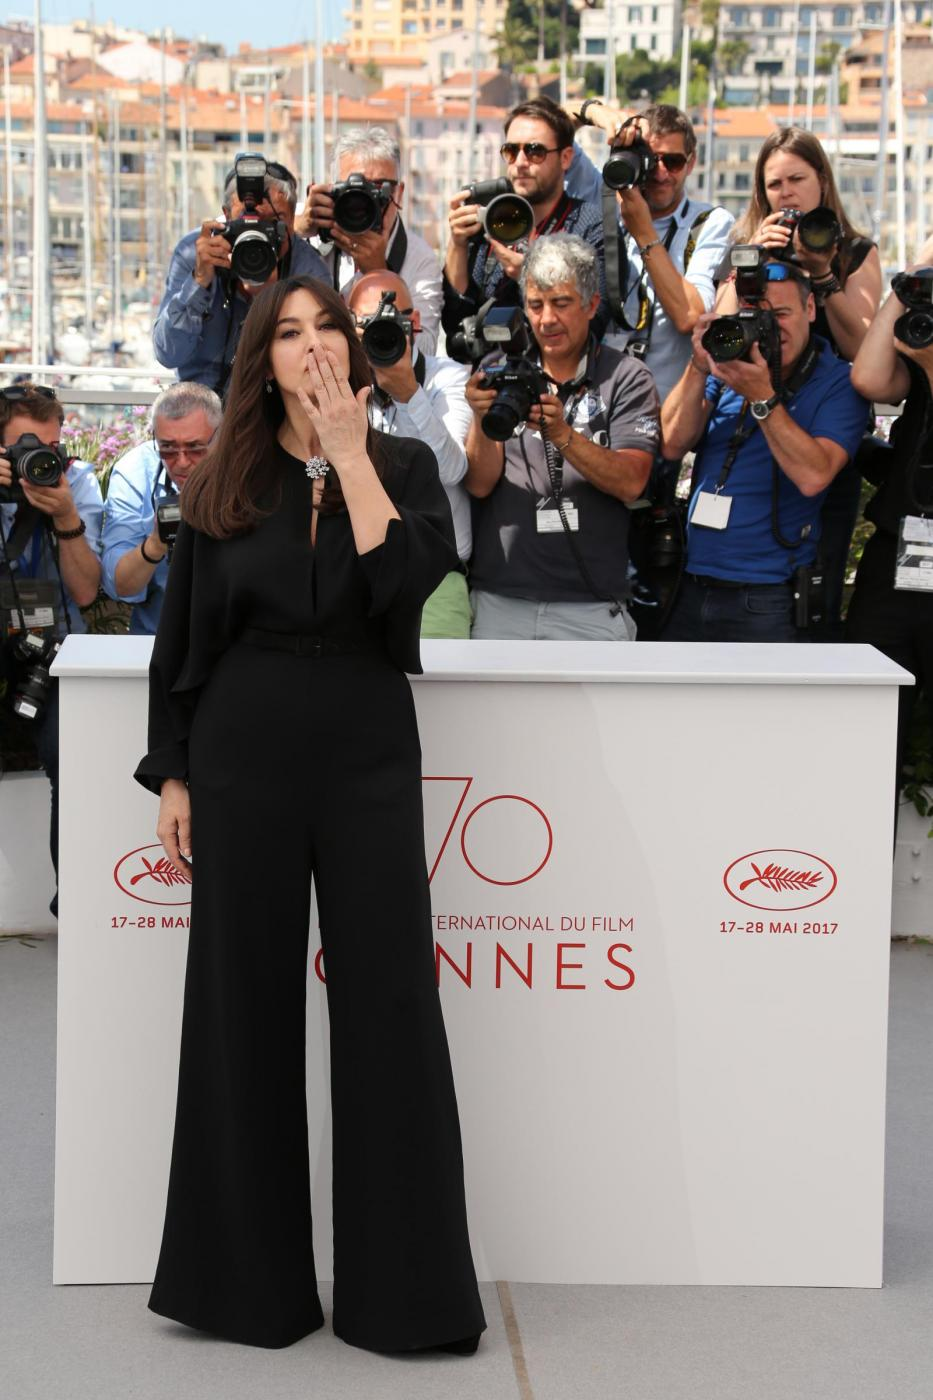 Monica Bellucci, Mistress Of Ceremonies posing at a photocall held at the Palais des Festivals in Cannes, France on May 17, 2017, as part of the 70th Cannes Film Festival. Photo by David Boyer/ABACAPRESS.COMAbacaPress/LaPresseOnly Italy 592932